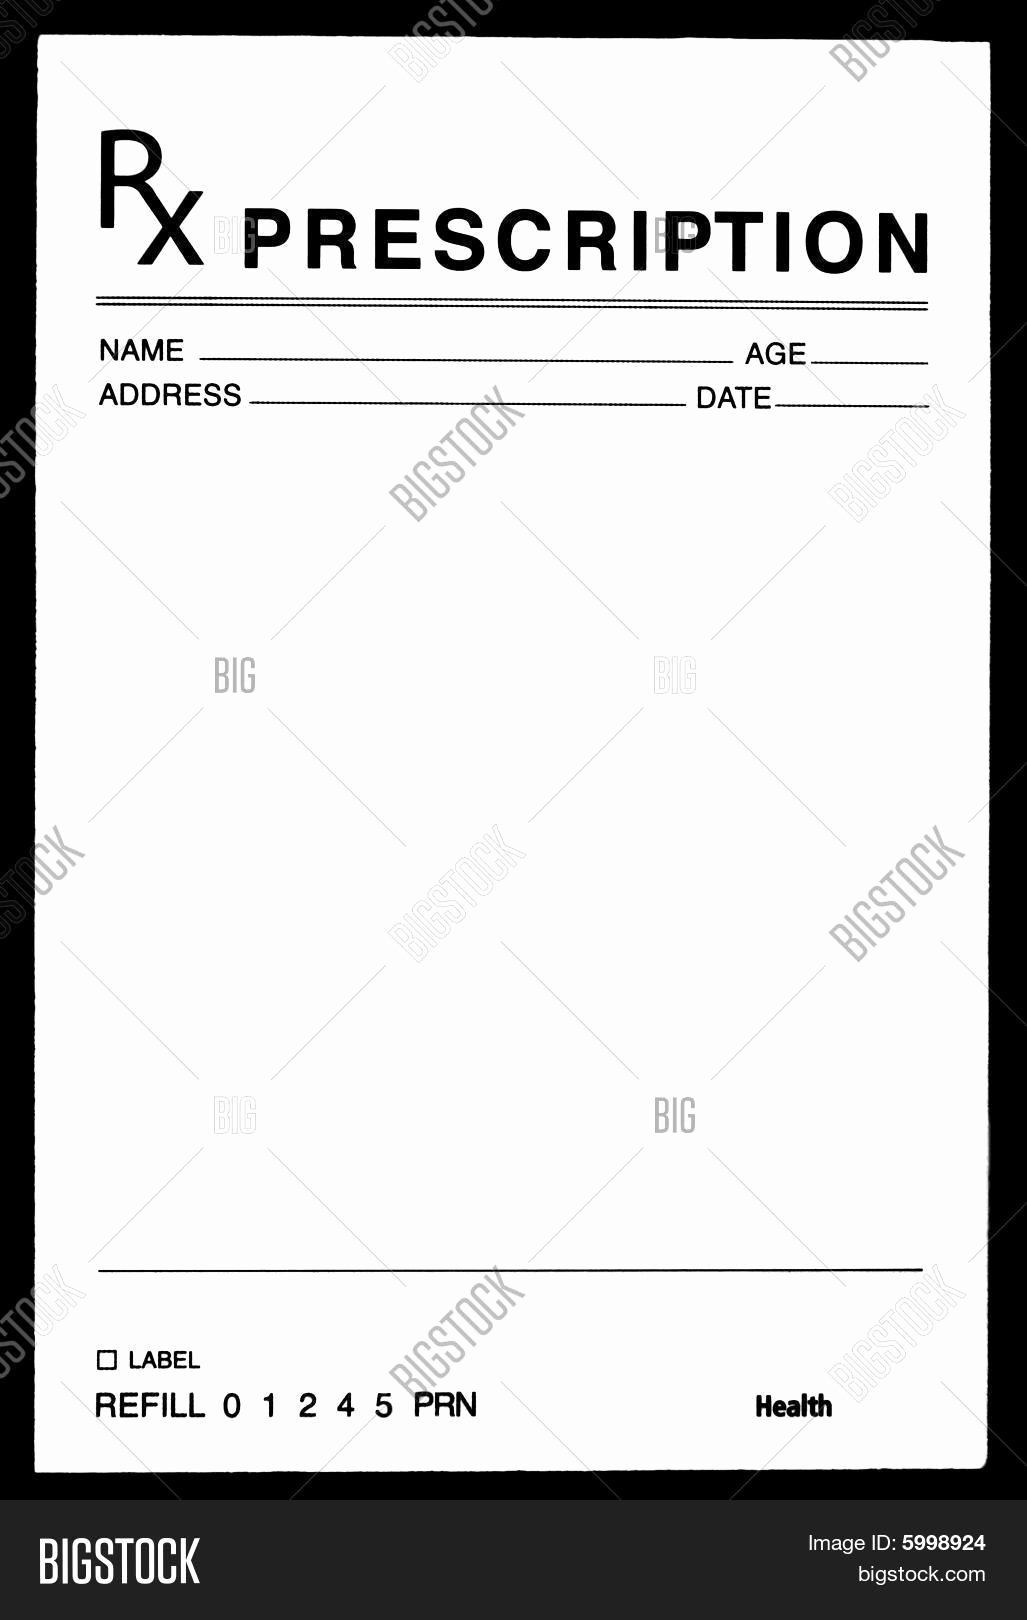 Fake Prescription Pad Template Beautiful Blank Prescription form Image Cg5p C